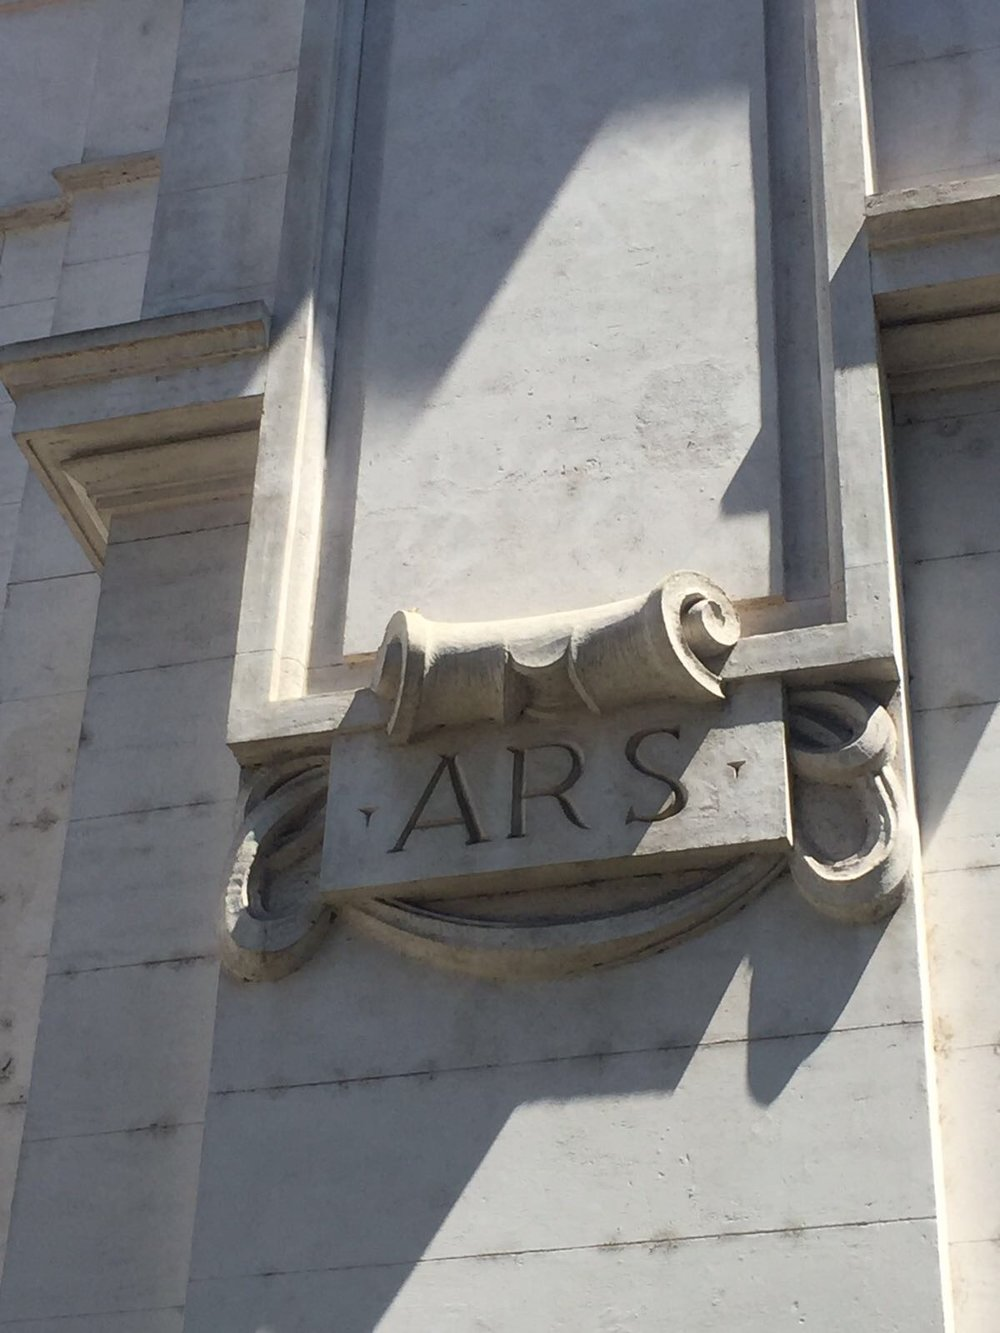 Outside the Galleria Nazionale d'Arte Moderna. 'ARS' is the Latin for 'art'.